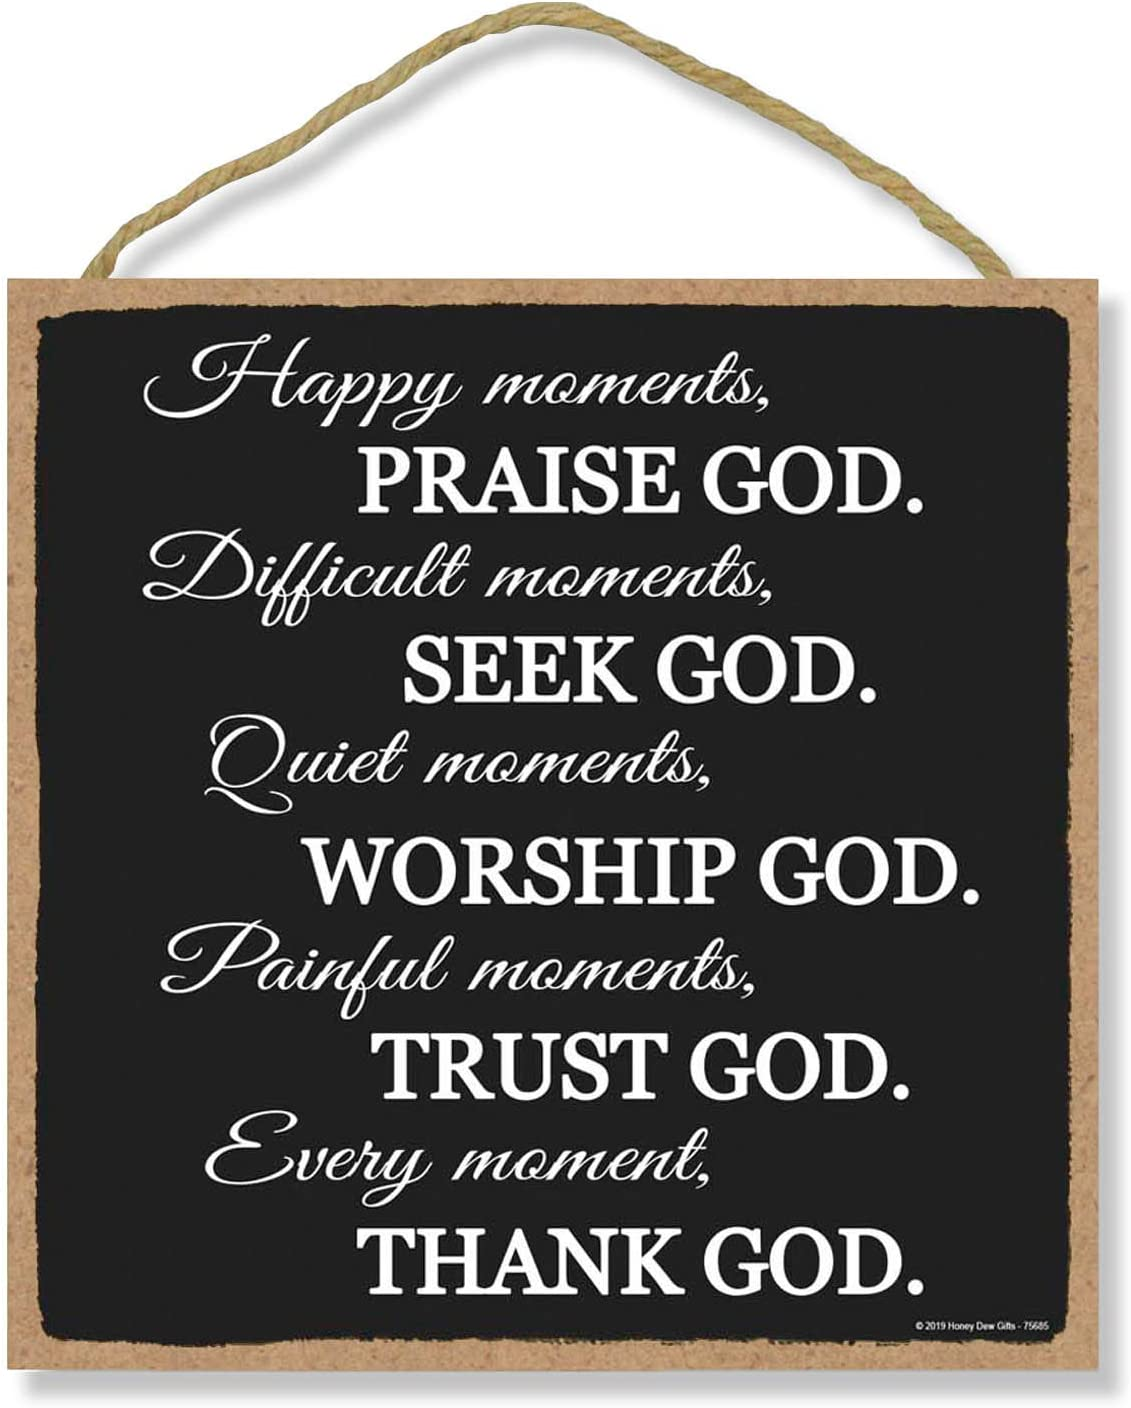 Honey Dew Gifts Christian Wall Decor, Praise, Seek, Worship, Trust, Thank God 10 inch by 10 inch Hanging Wood Sign, Home Decorations